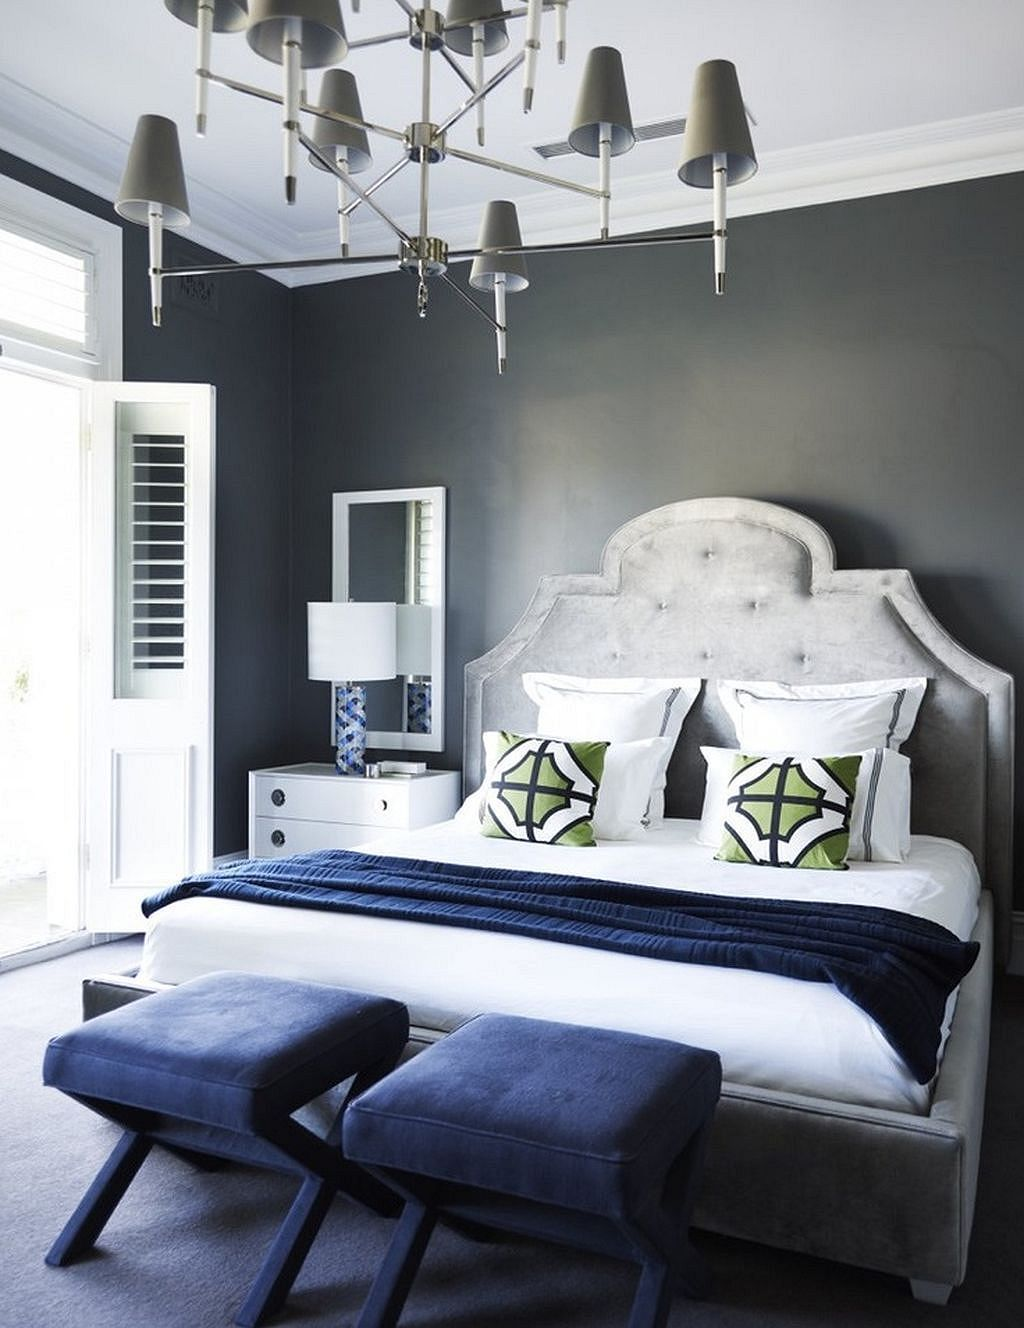 70 Navy And White Bedroom Ideas 17 Furniture, White